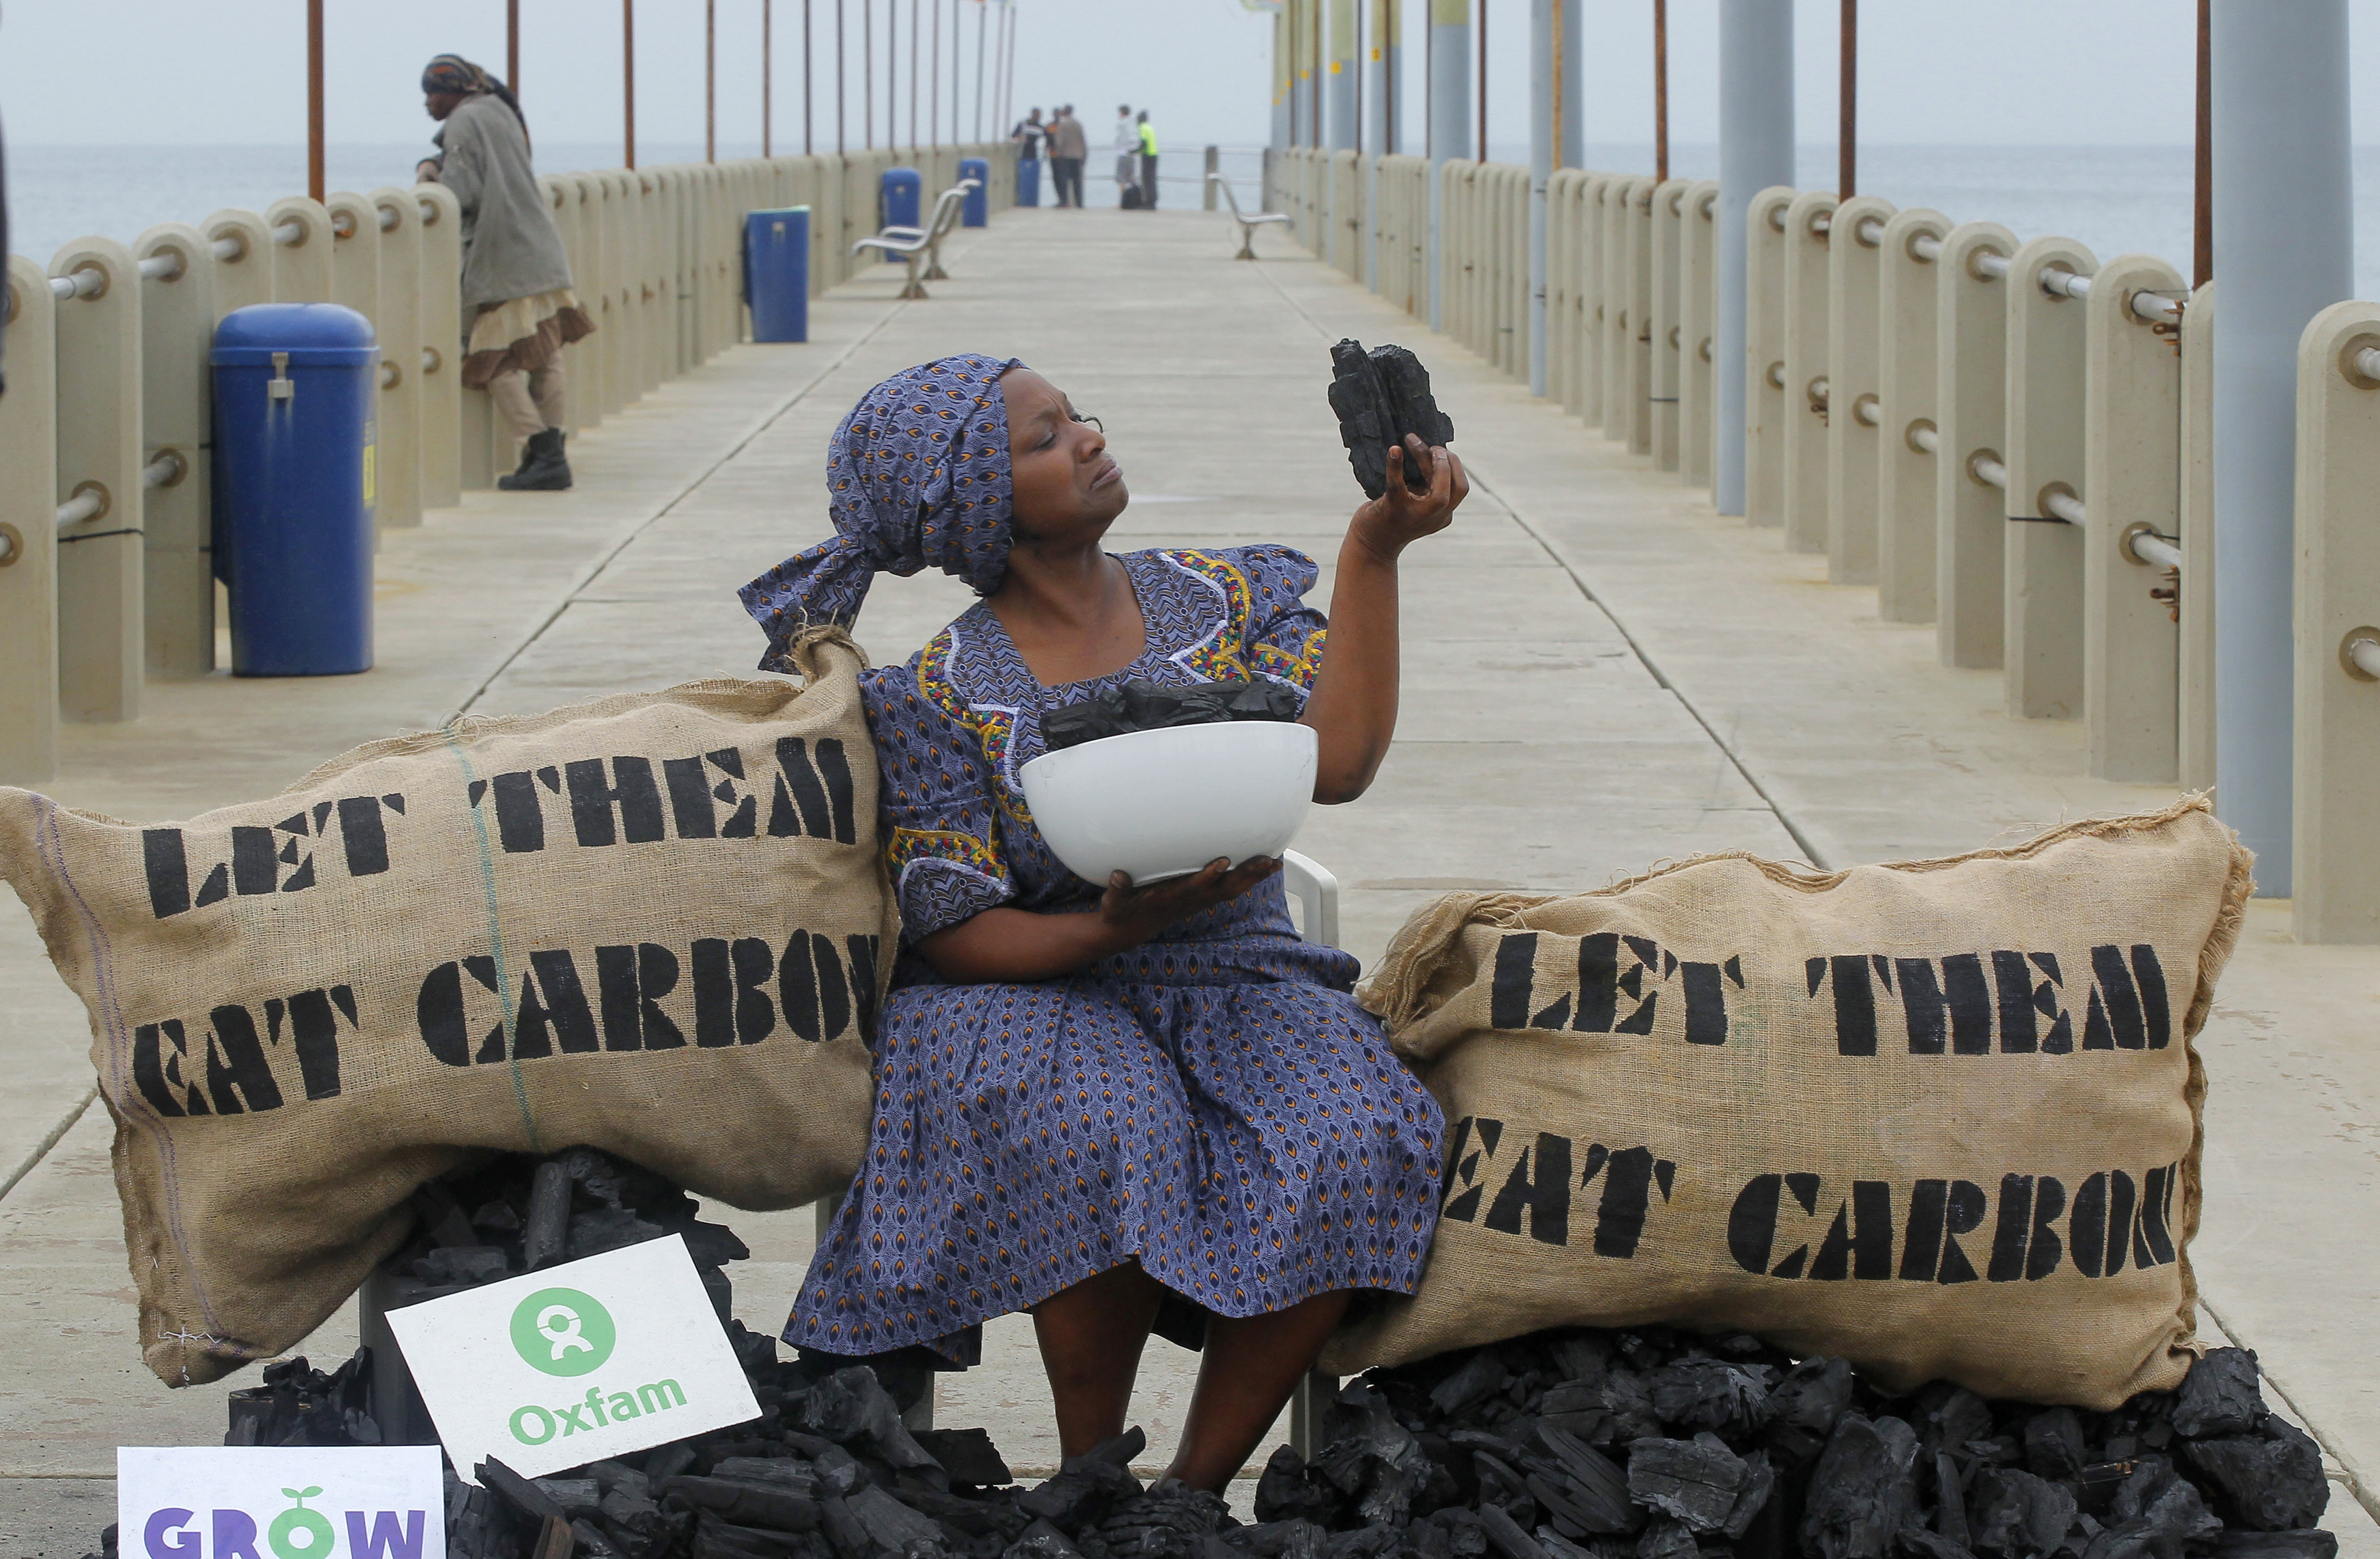 Busi Ndlovu, a member of the aid group OXFAM, stages a protest against the use of coal-based energy on Durban's beachfront, December 9, 2011. The city is hosting the United Nations Climate Change Conference (COP17) meeting.  REUTERS/Mike Hutchings (SOUTH AFRICA)CLIMATE-DURBAN - Tags: ENVIRONMENT CIVIL UNREST ENERGY) - GM1E7C91E1F01